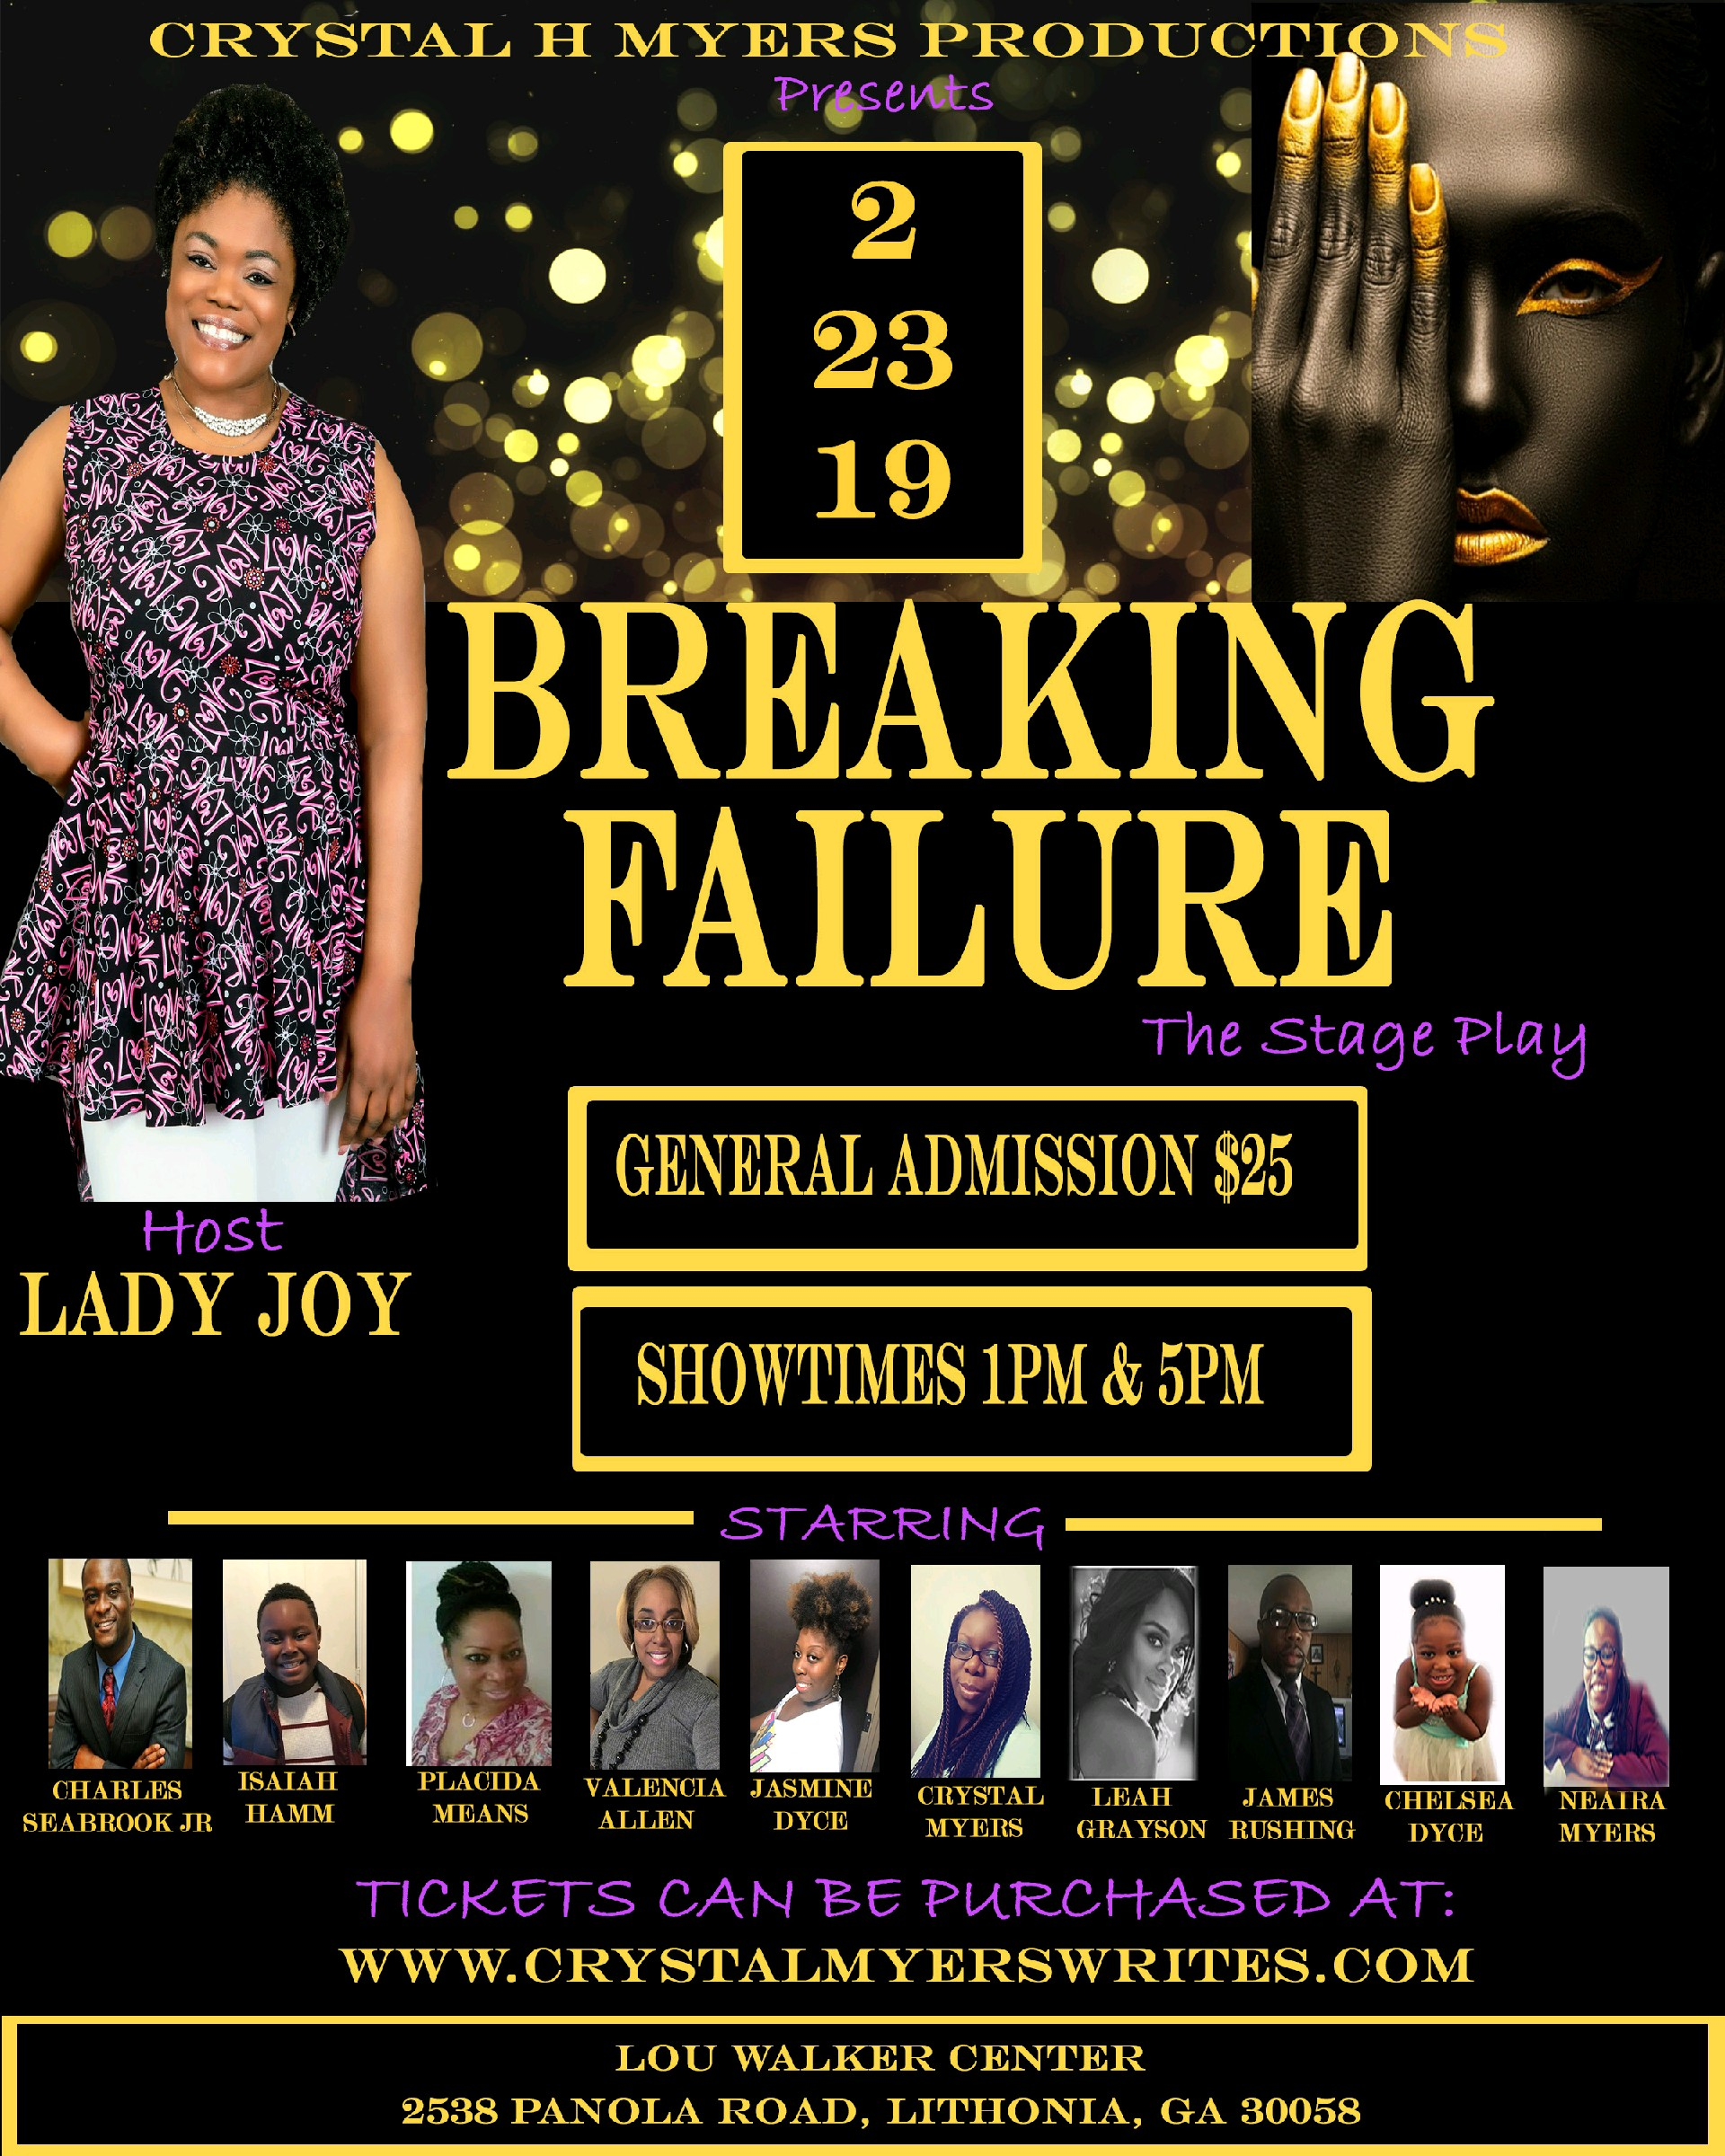 BREAKING_FAILURE_WITH_LADY_JOY_PURPLE